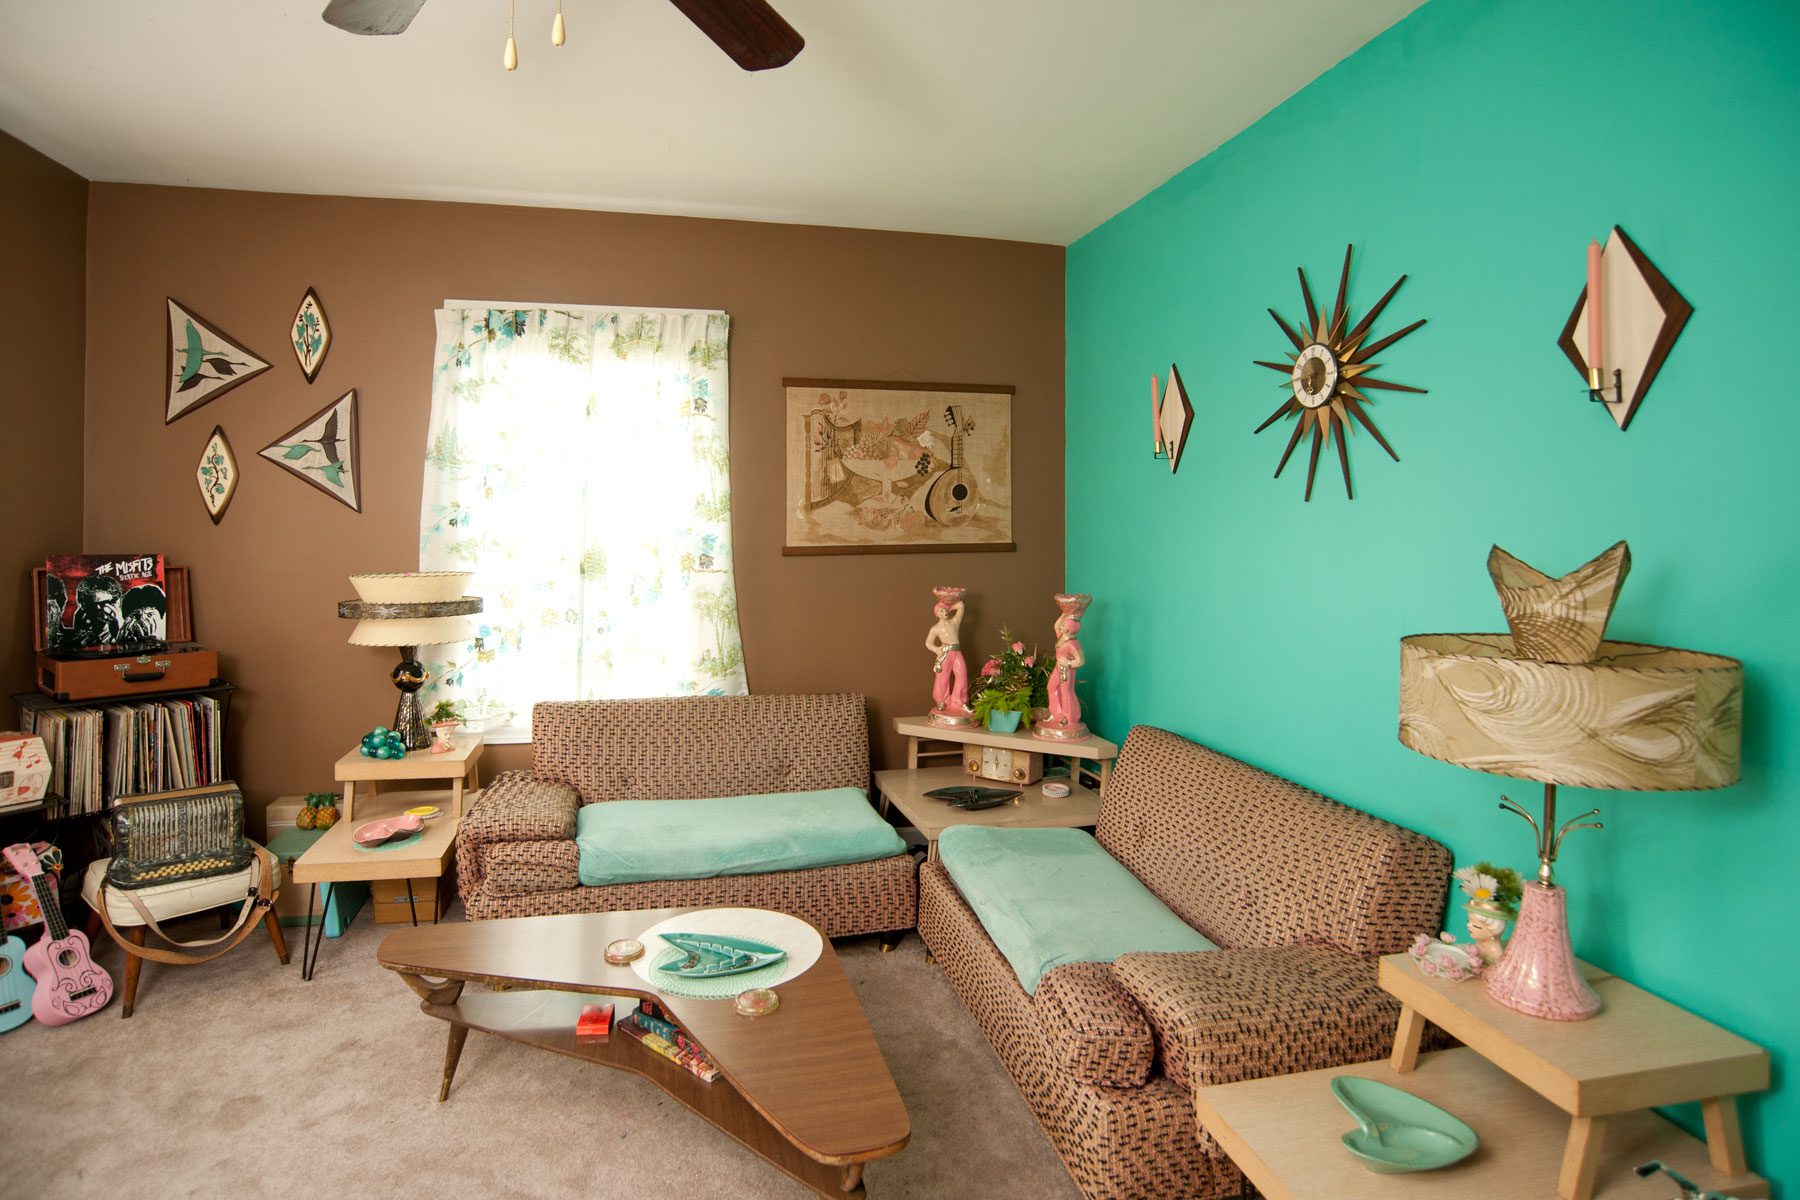 Mid century decor with mandy ness harkins photo blog for Turquoise color scheme living room